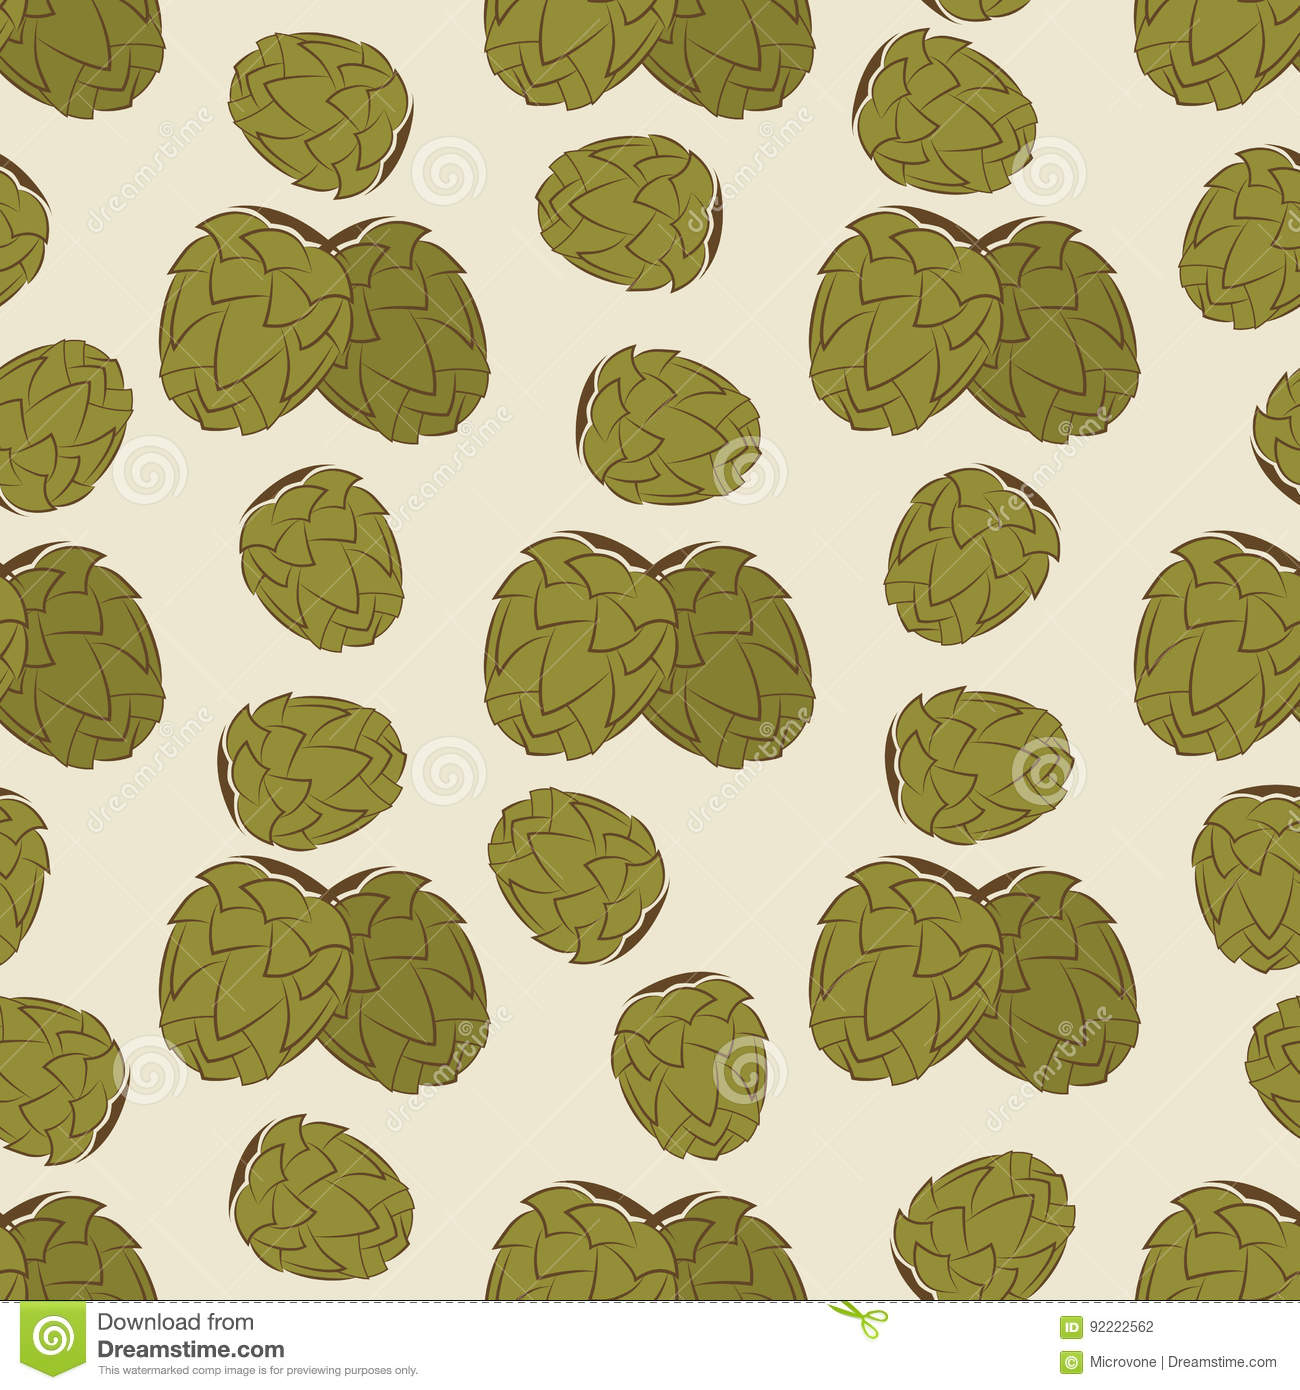 Green Hop Seamless Pattern Design Vintage Texture With Hand Drawn